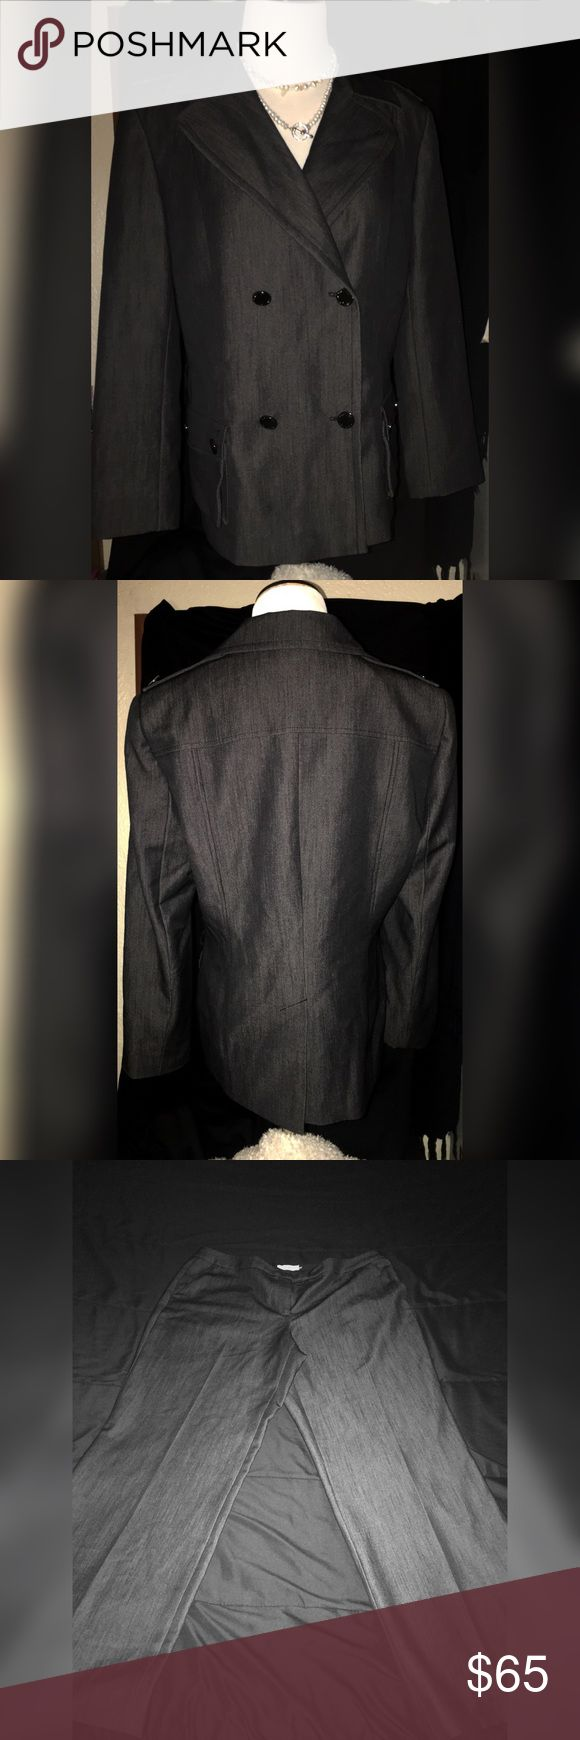 Calvin Klein Women's 2 Piece Suit (Dark Gray) This suit has only been worn once for an interview. It is in great condition and ready to be shipped! It's true to size and very comfortable. If you would like more detailed pictures please don't hesitate to ask. Shipping may exceed 5 pounds. The pants look lighter because I had to use a flash. They are the same color as the jacket. Go steal the show at your next business meeting! This suit is for making moves!!🤙 Calvin Klein Other